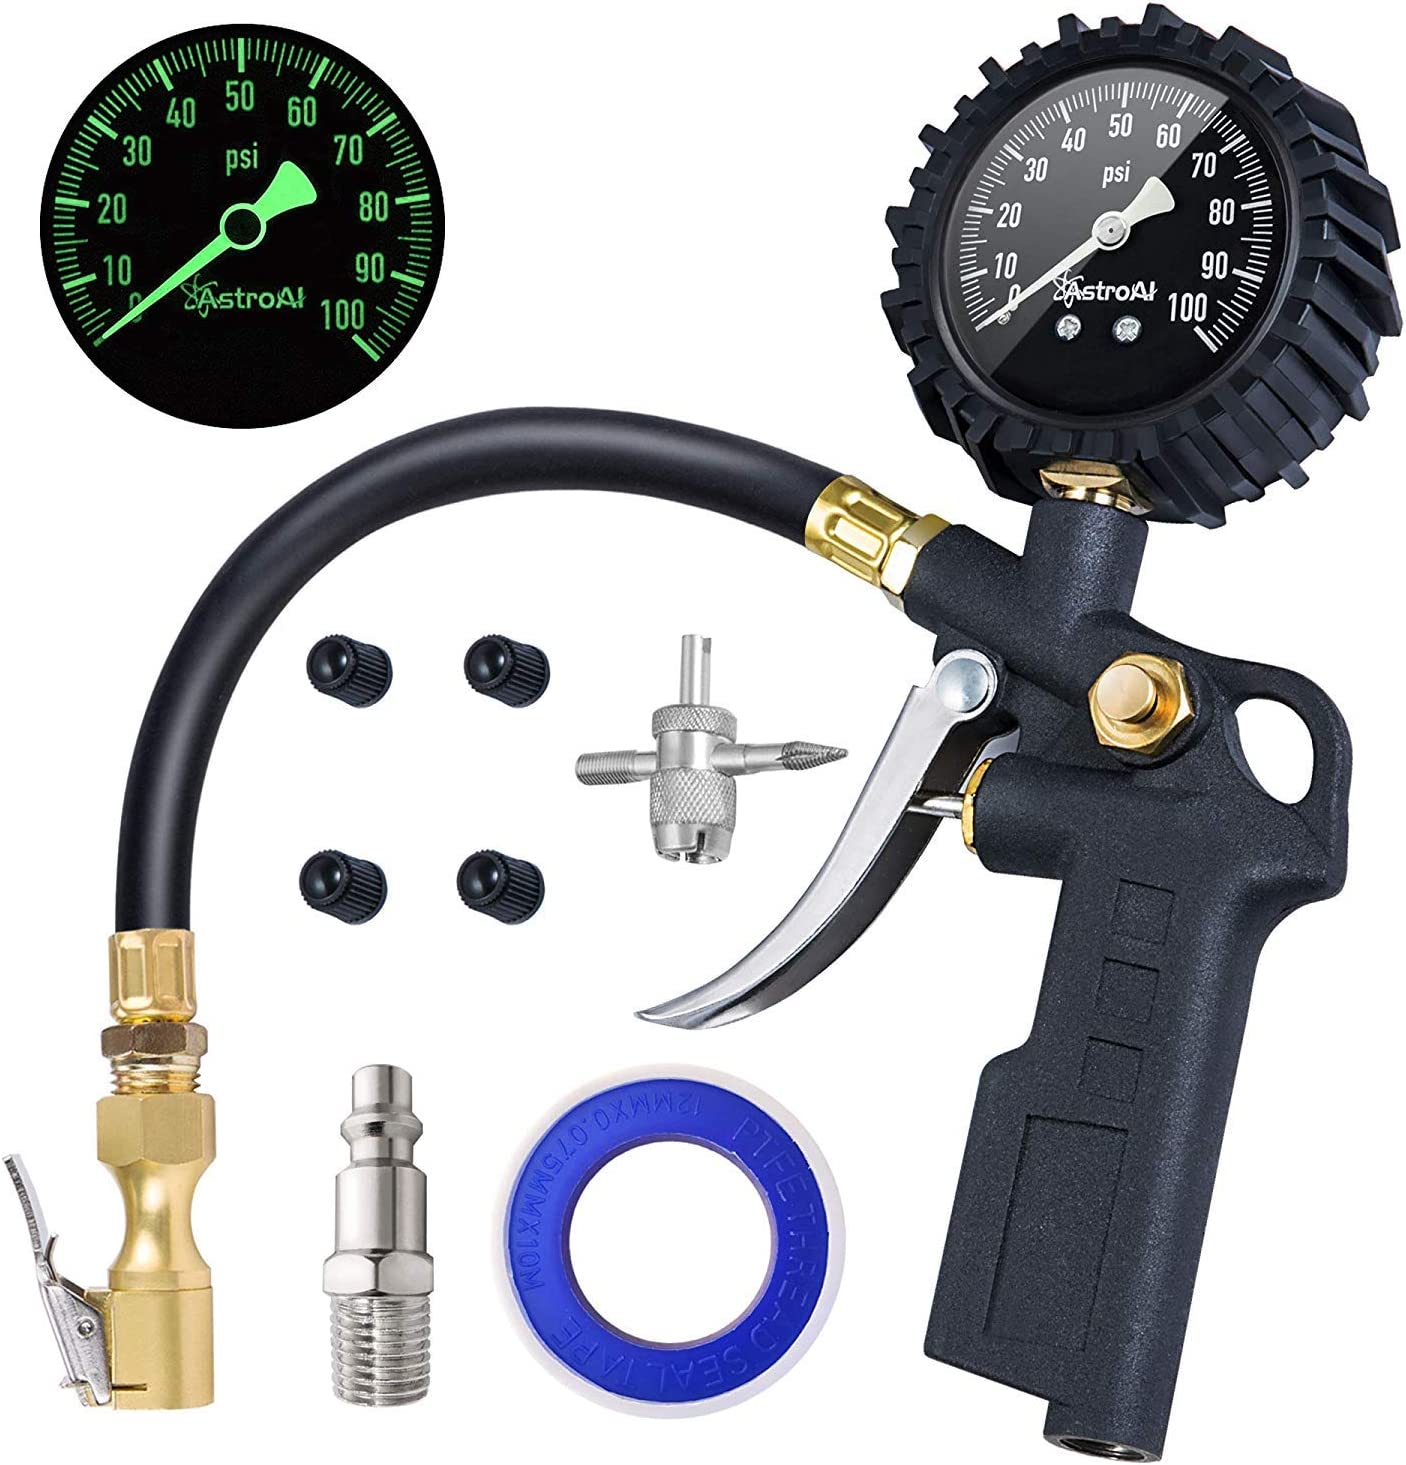 """AstroAI Tire Inflator with Pressure Gauge, 100 PSI Air Chuck and Compressor Accessories Heavy Duty with Large 2.5"""" Easy Read Glow Dial, Durable Rubber Hose and Quick Connect Coupler: Automotive"""